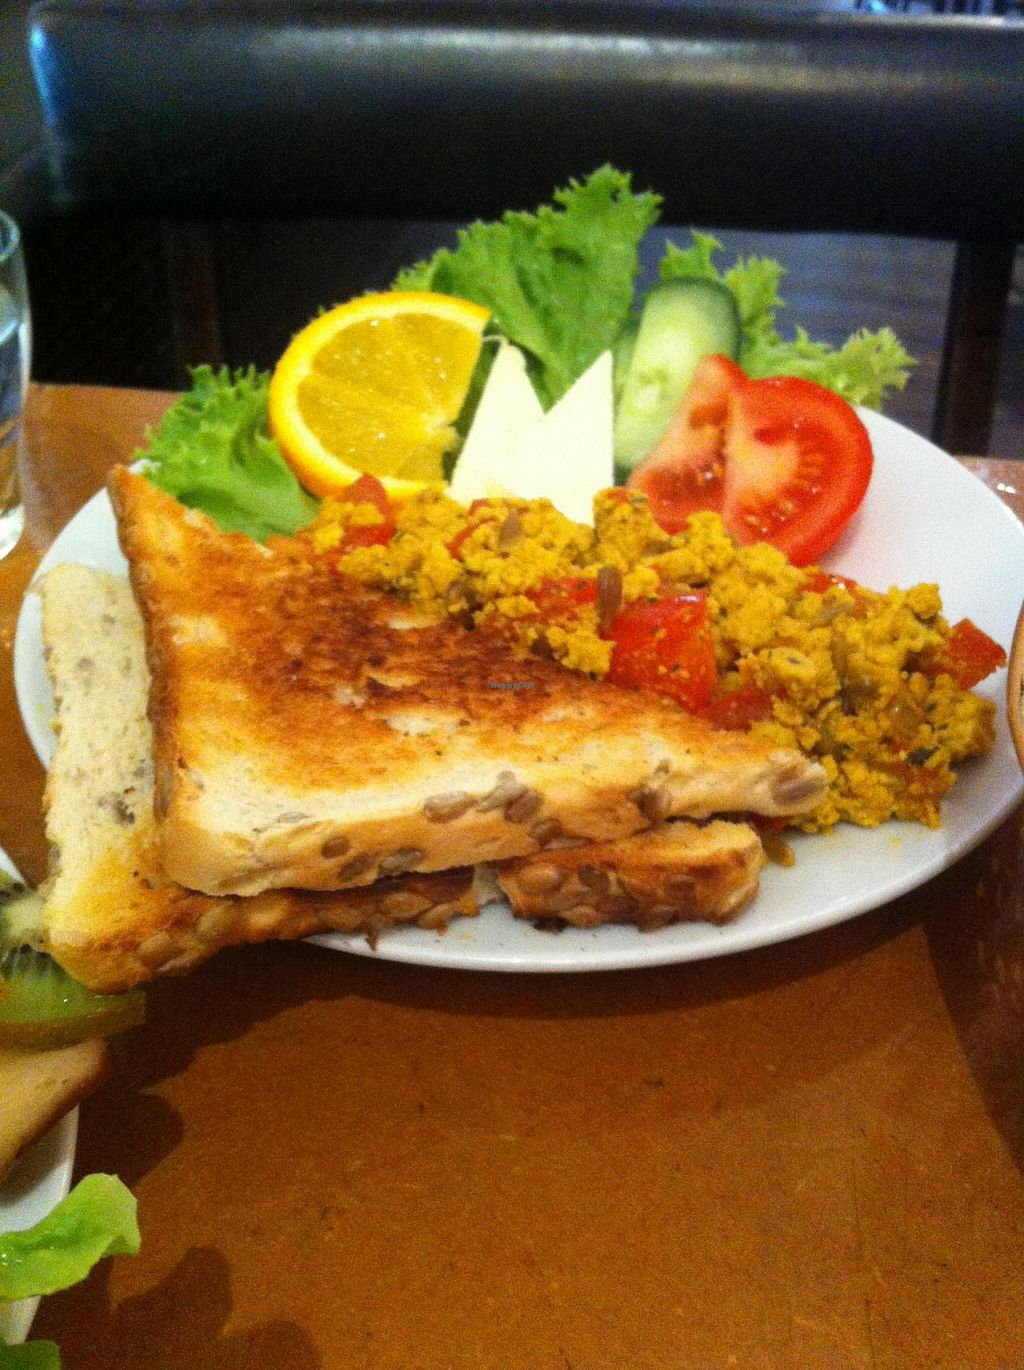 "Photo of Cafe Miller  by <a href=""/members/profile/SimonGruber"">SimonGruber</a> <br/>scrambled tofu <br/> September 2, 2014  - <a href='/contact/abuse/image/33633/78851'>Report</a>"